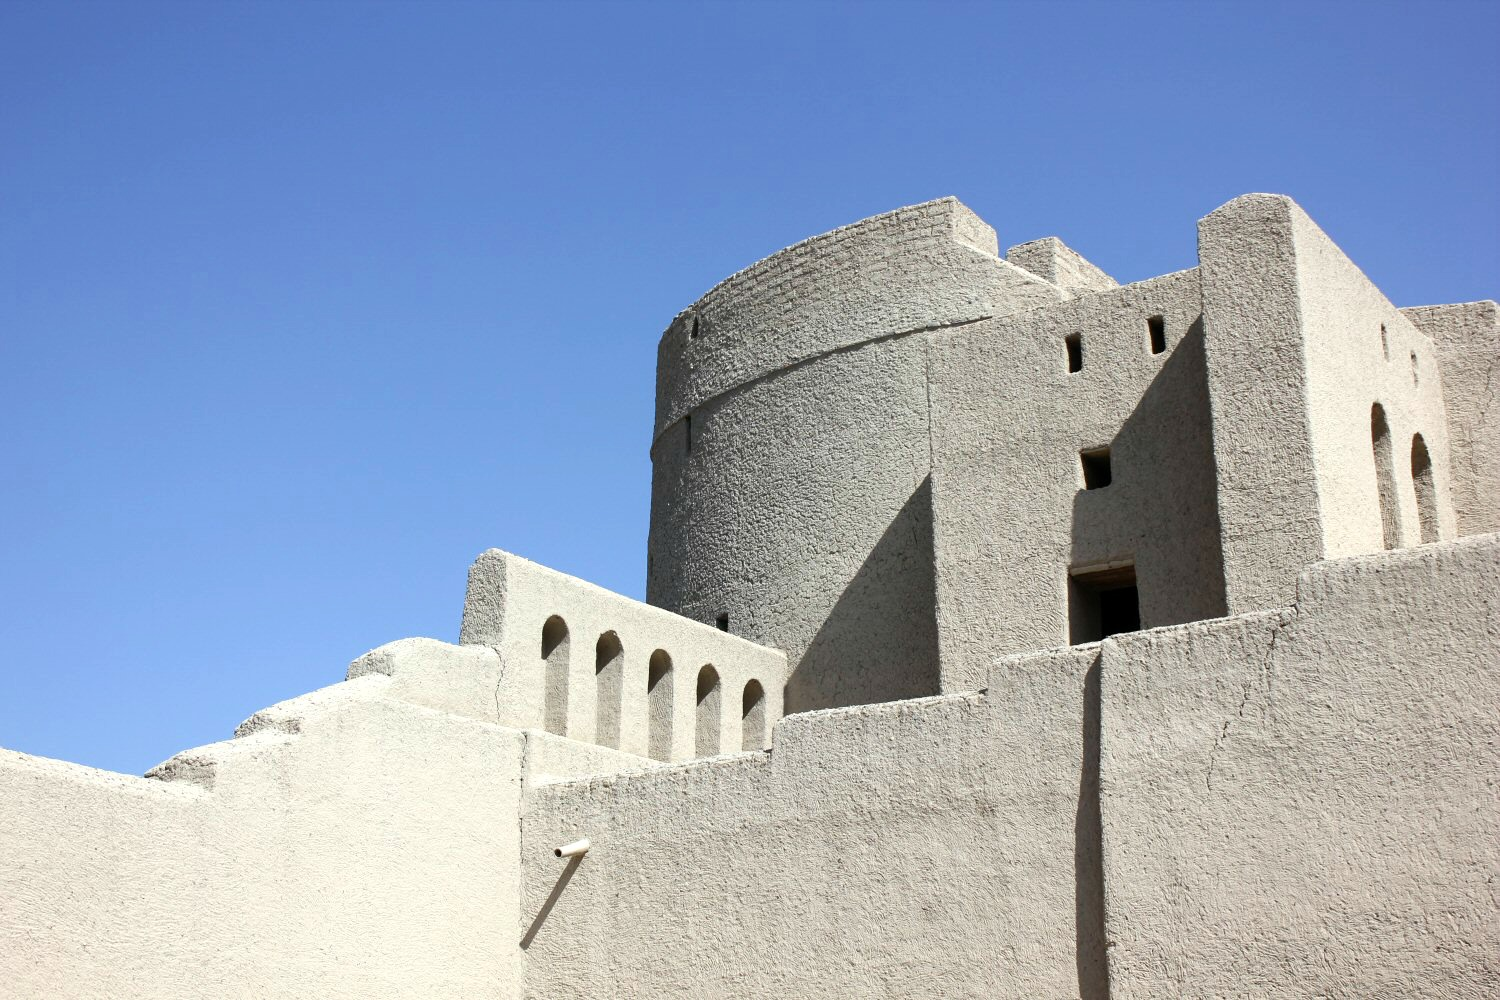 A view of the round white tower and walls of Bahla Fort in Oman against a blue sky- my nine reasons to visit Oman with kids